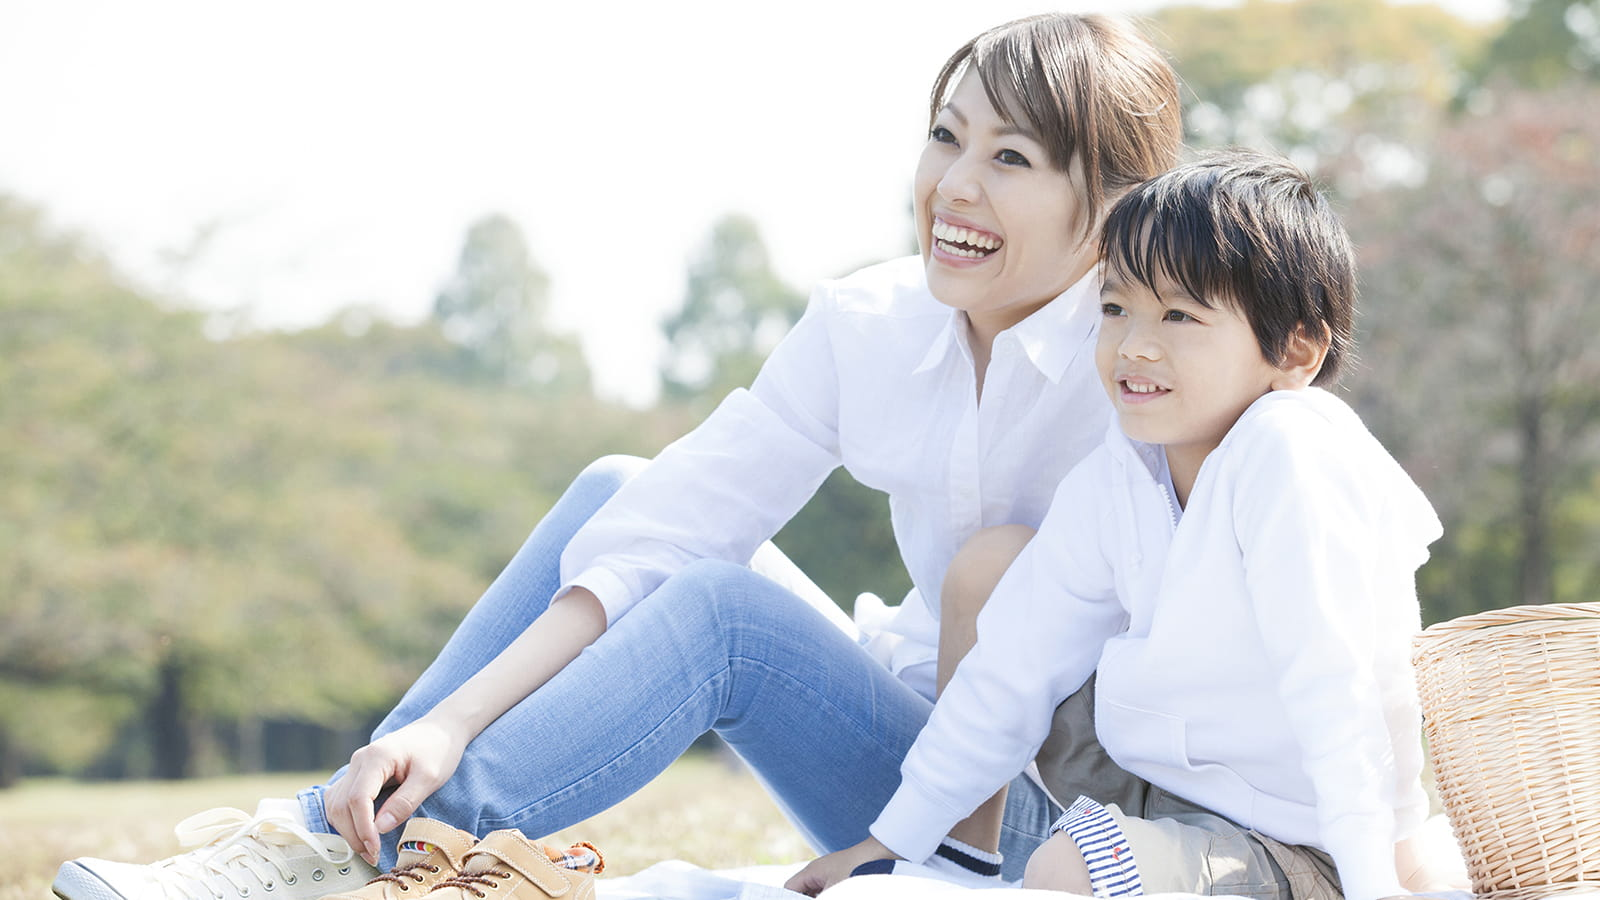 Asian lady and boy sitting in a park